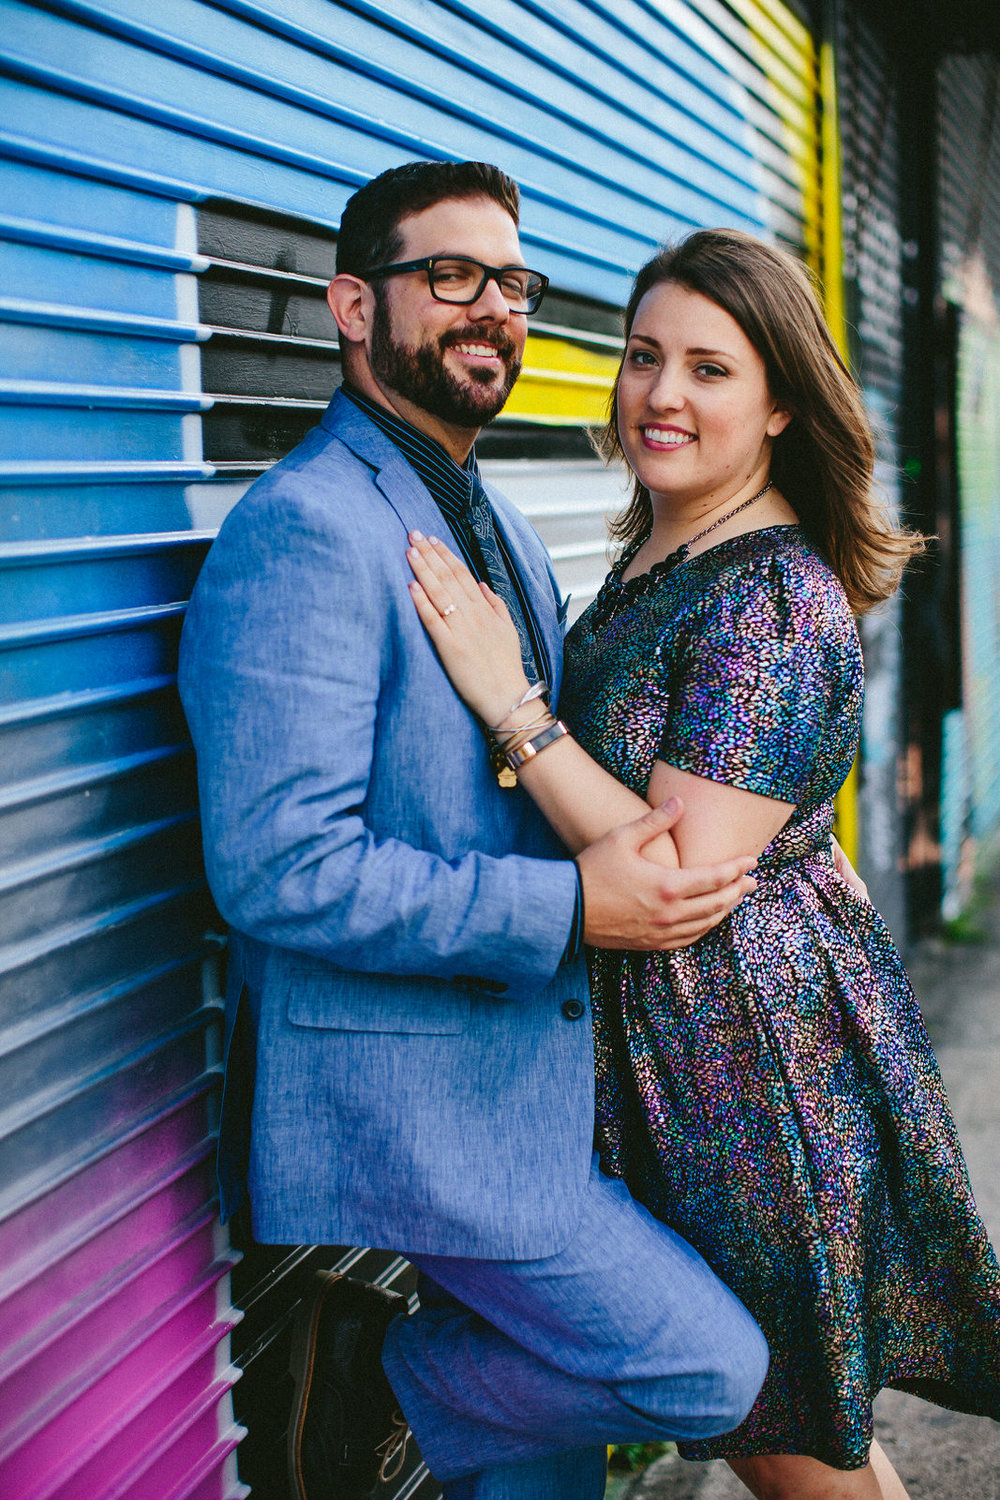 san_francisco_engagement_portraits_tiny_house_photo.jpg